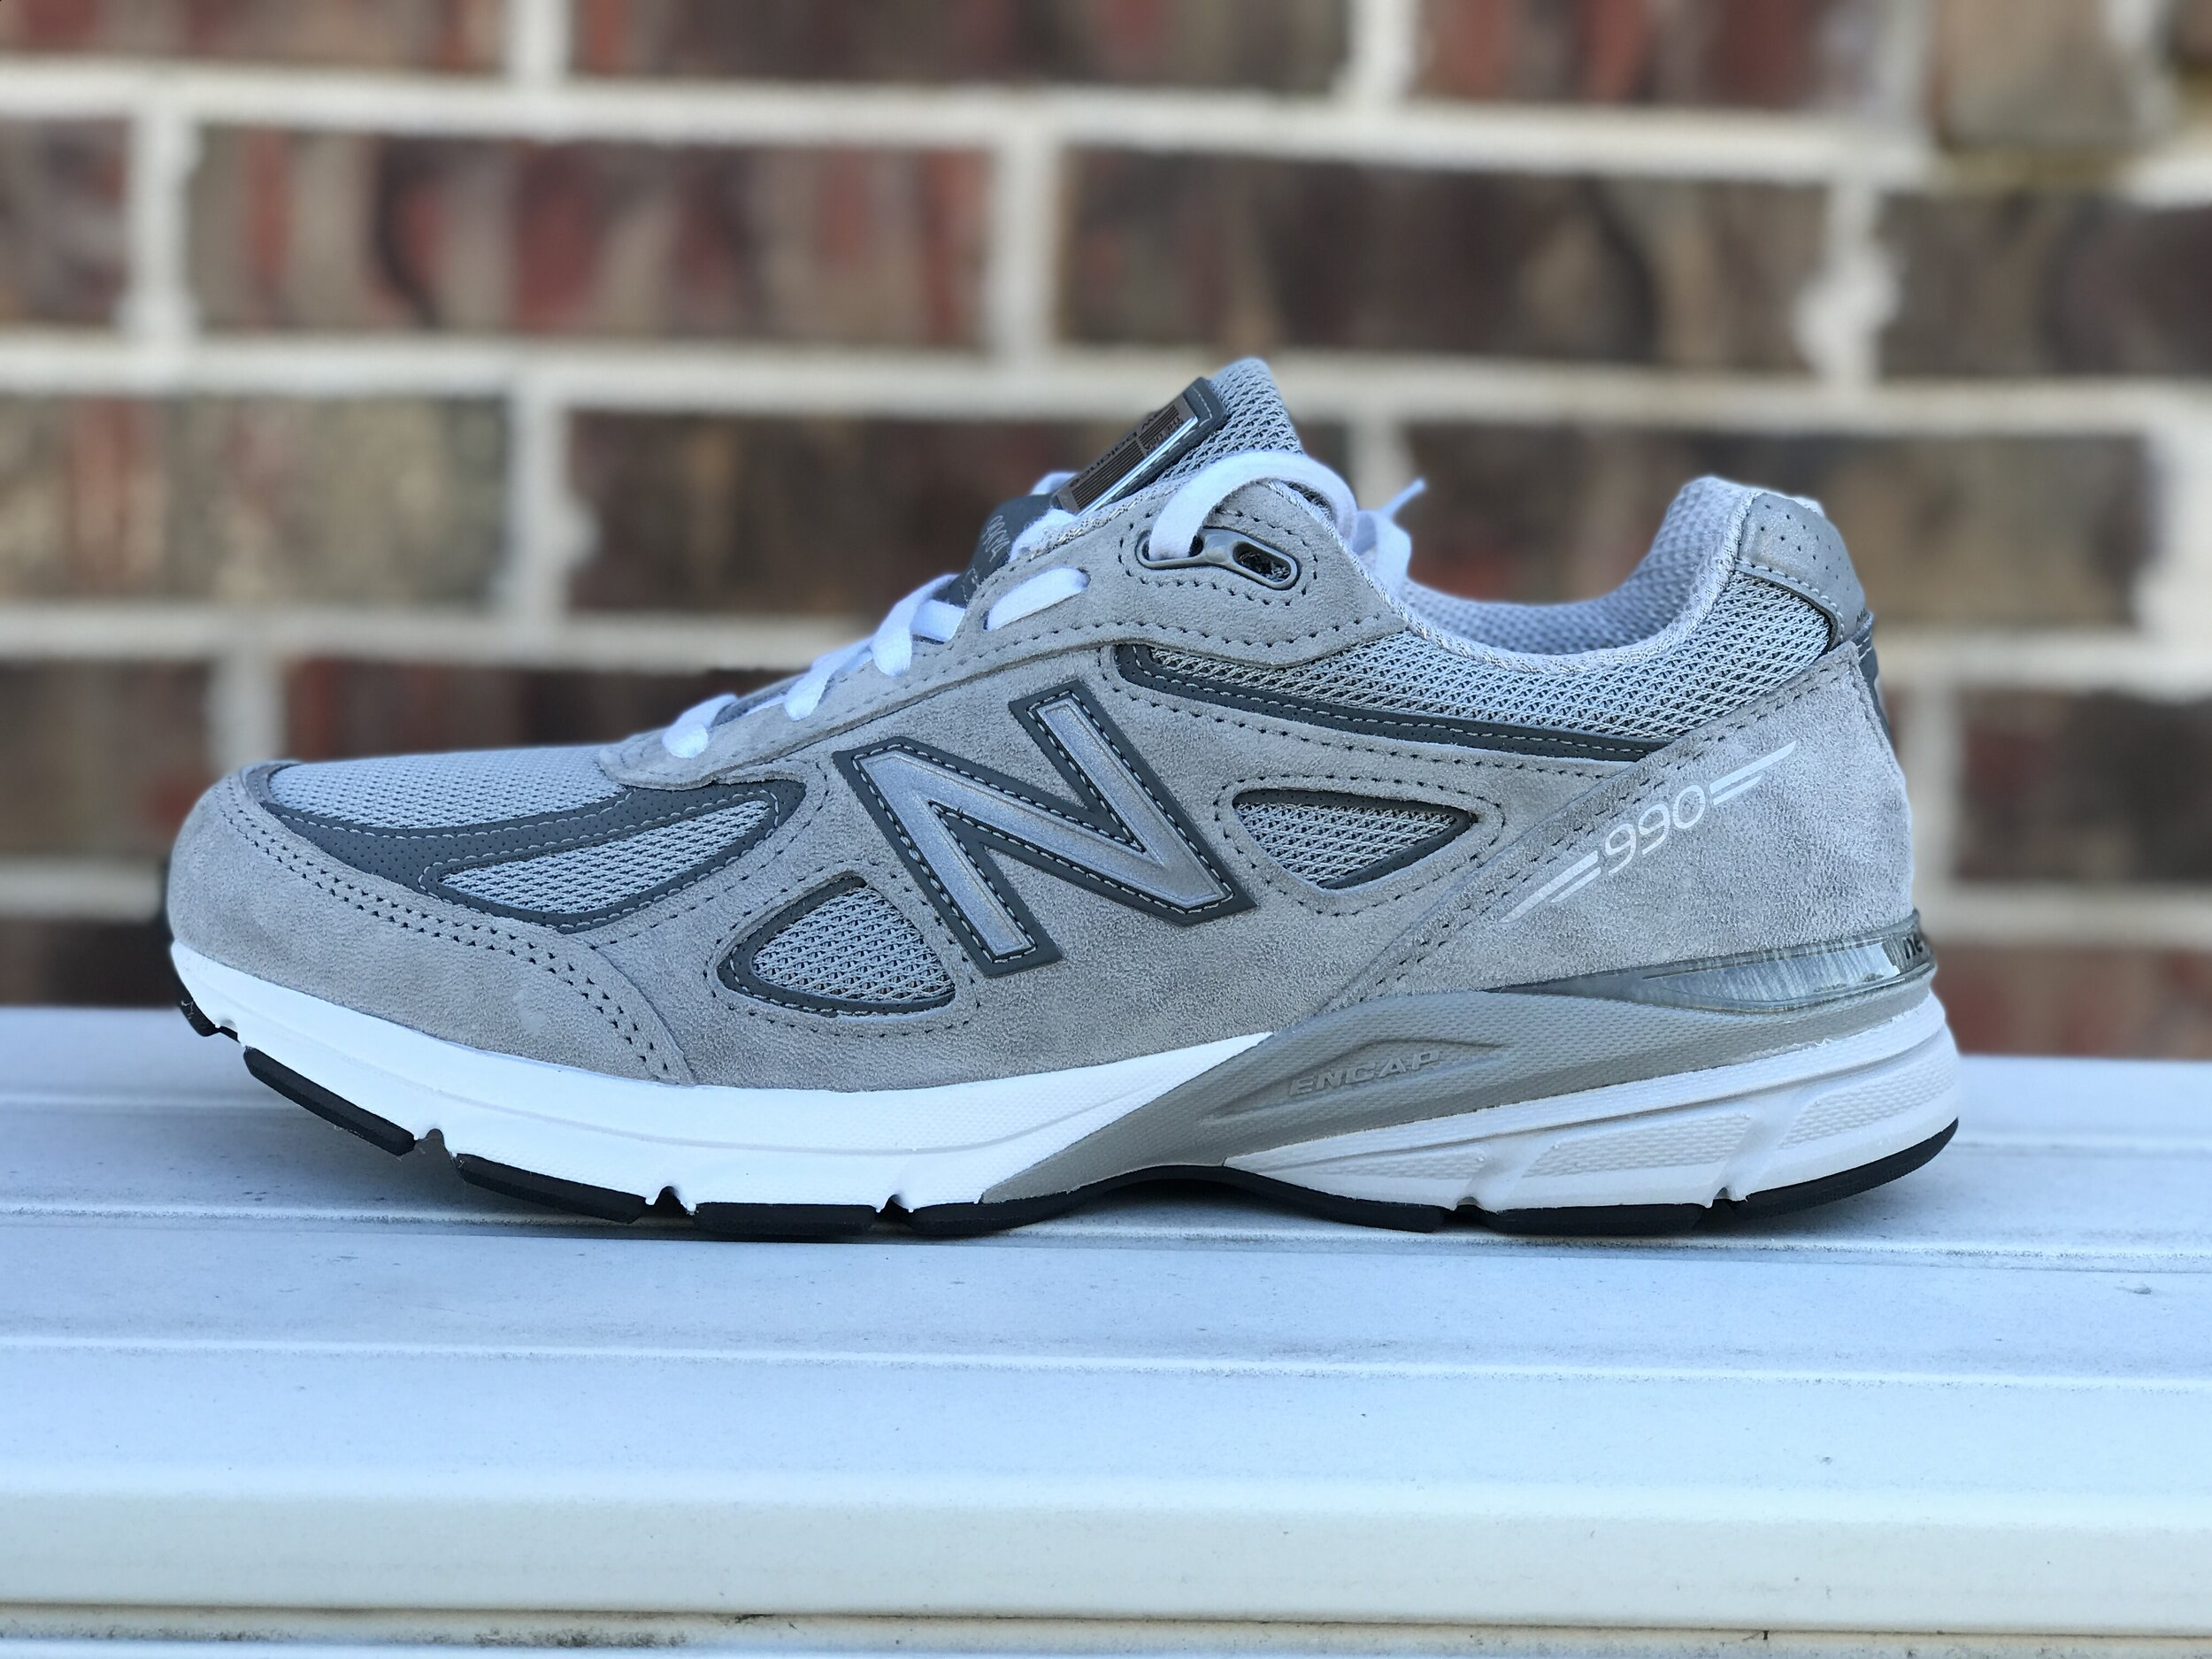 actualizar Conflicto Tumor maligno  How Does The New Balance 990v4 Fit? [Easy Sizing Guide]